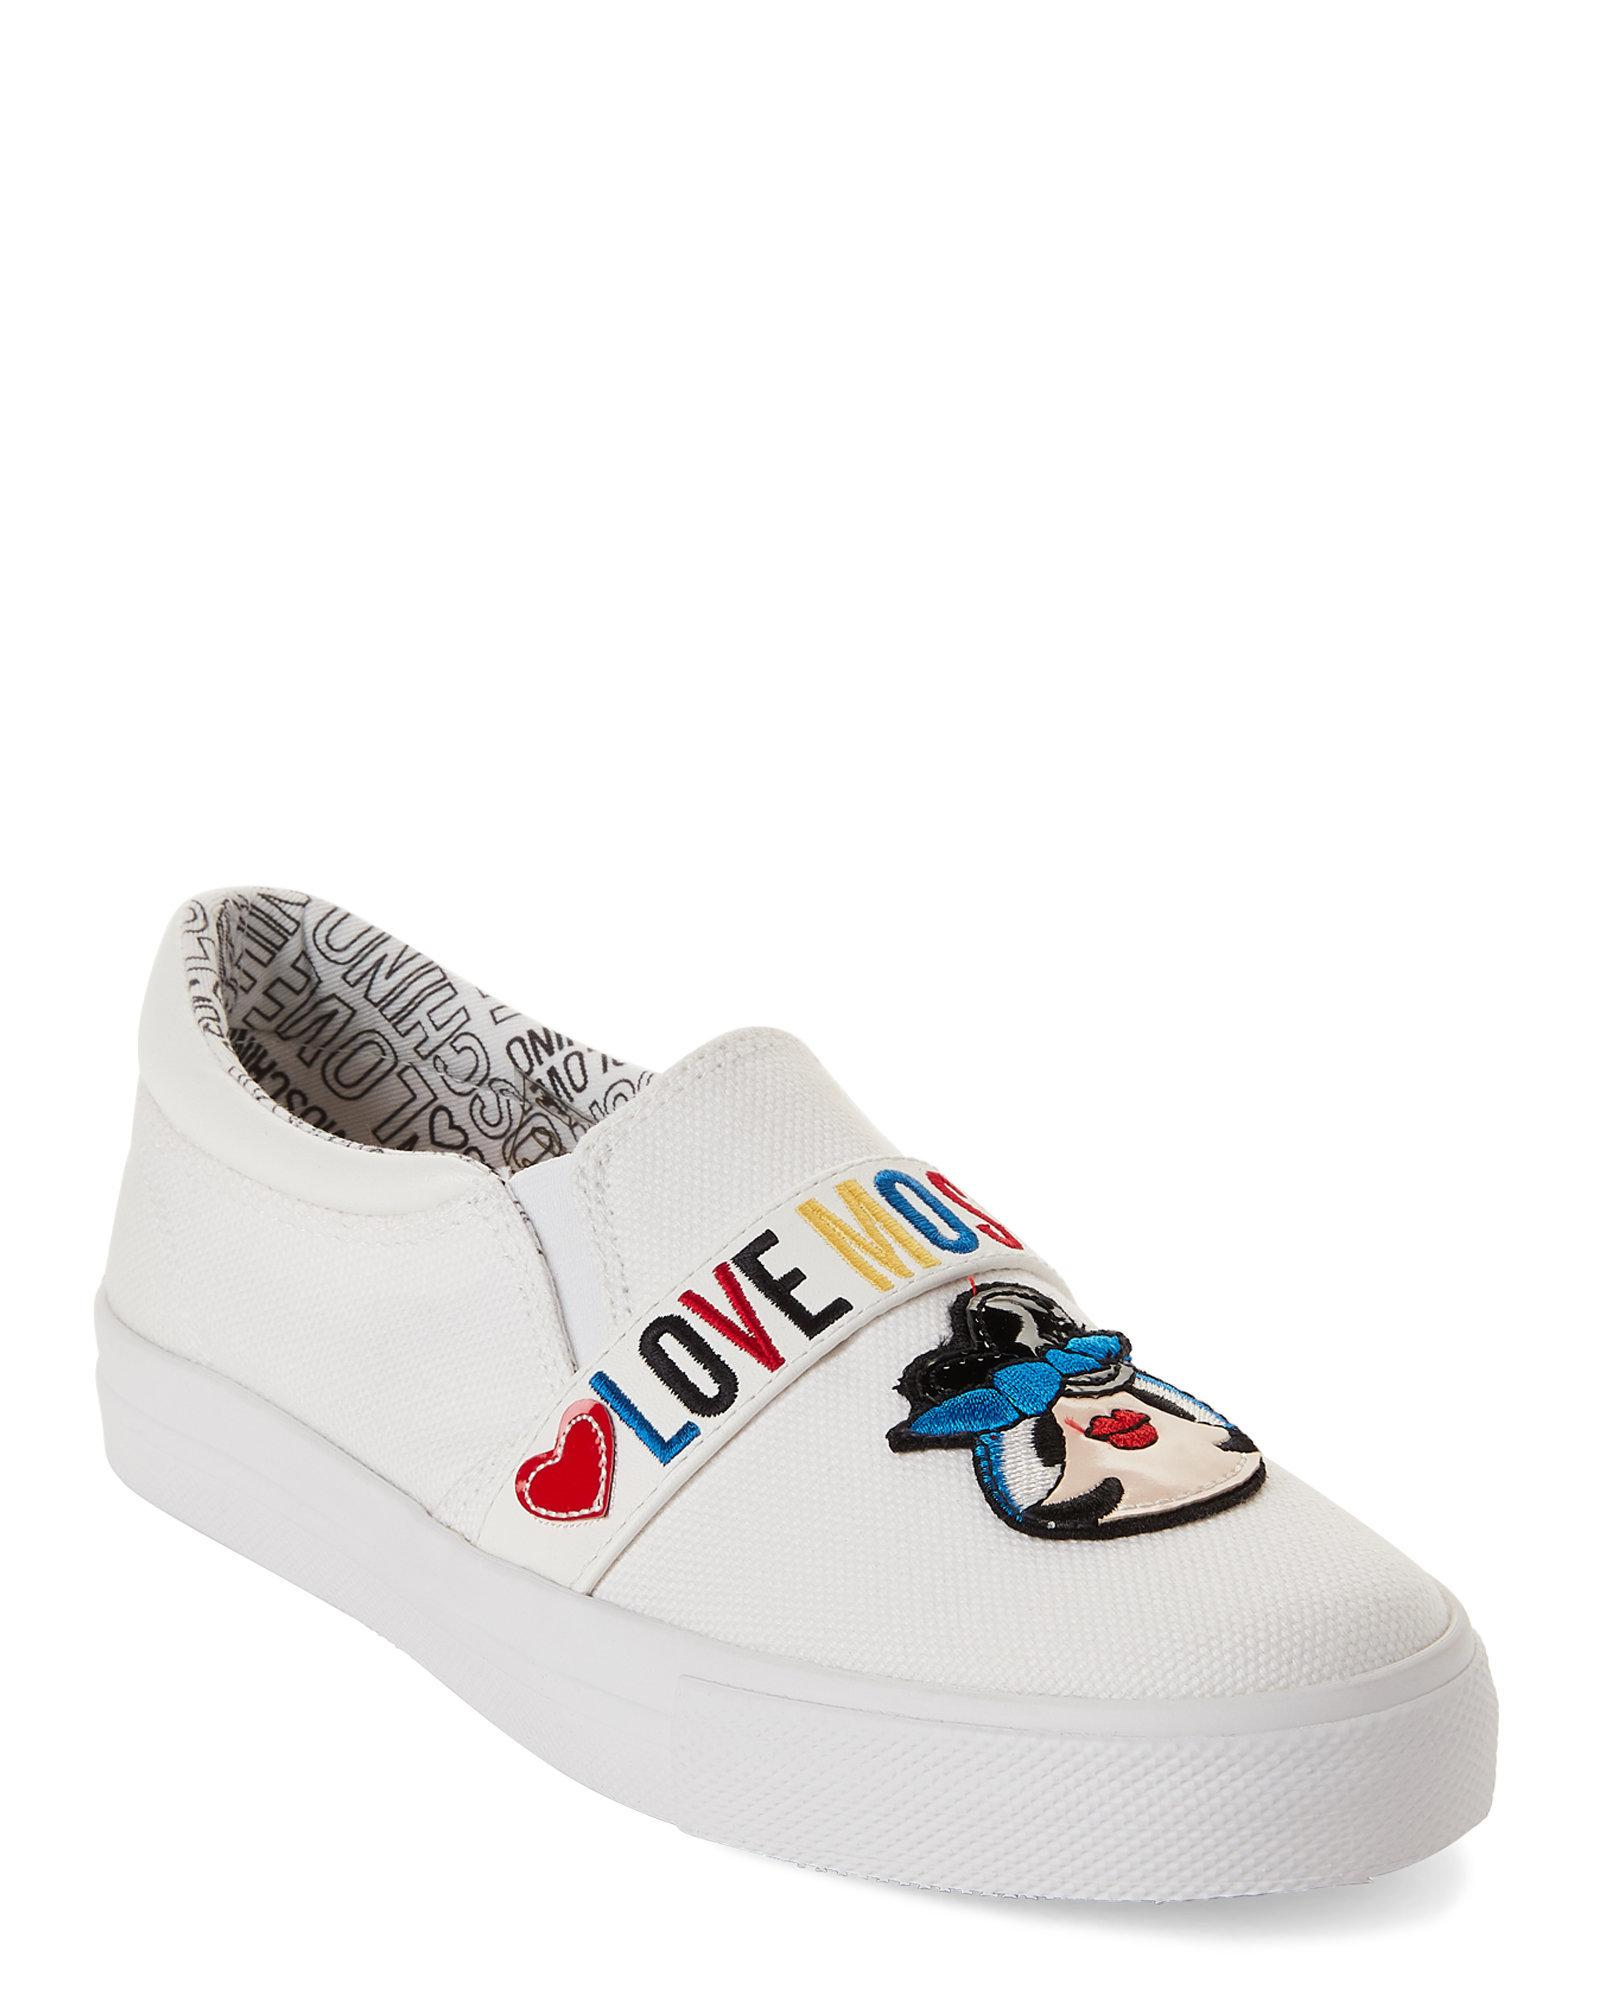 c291dc50112 Lyst - Love Moschino White Logo Canvas Slip-on Sneakers in White